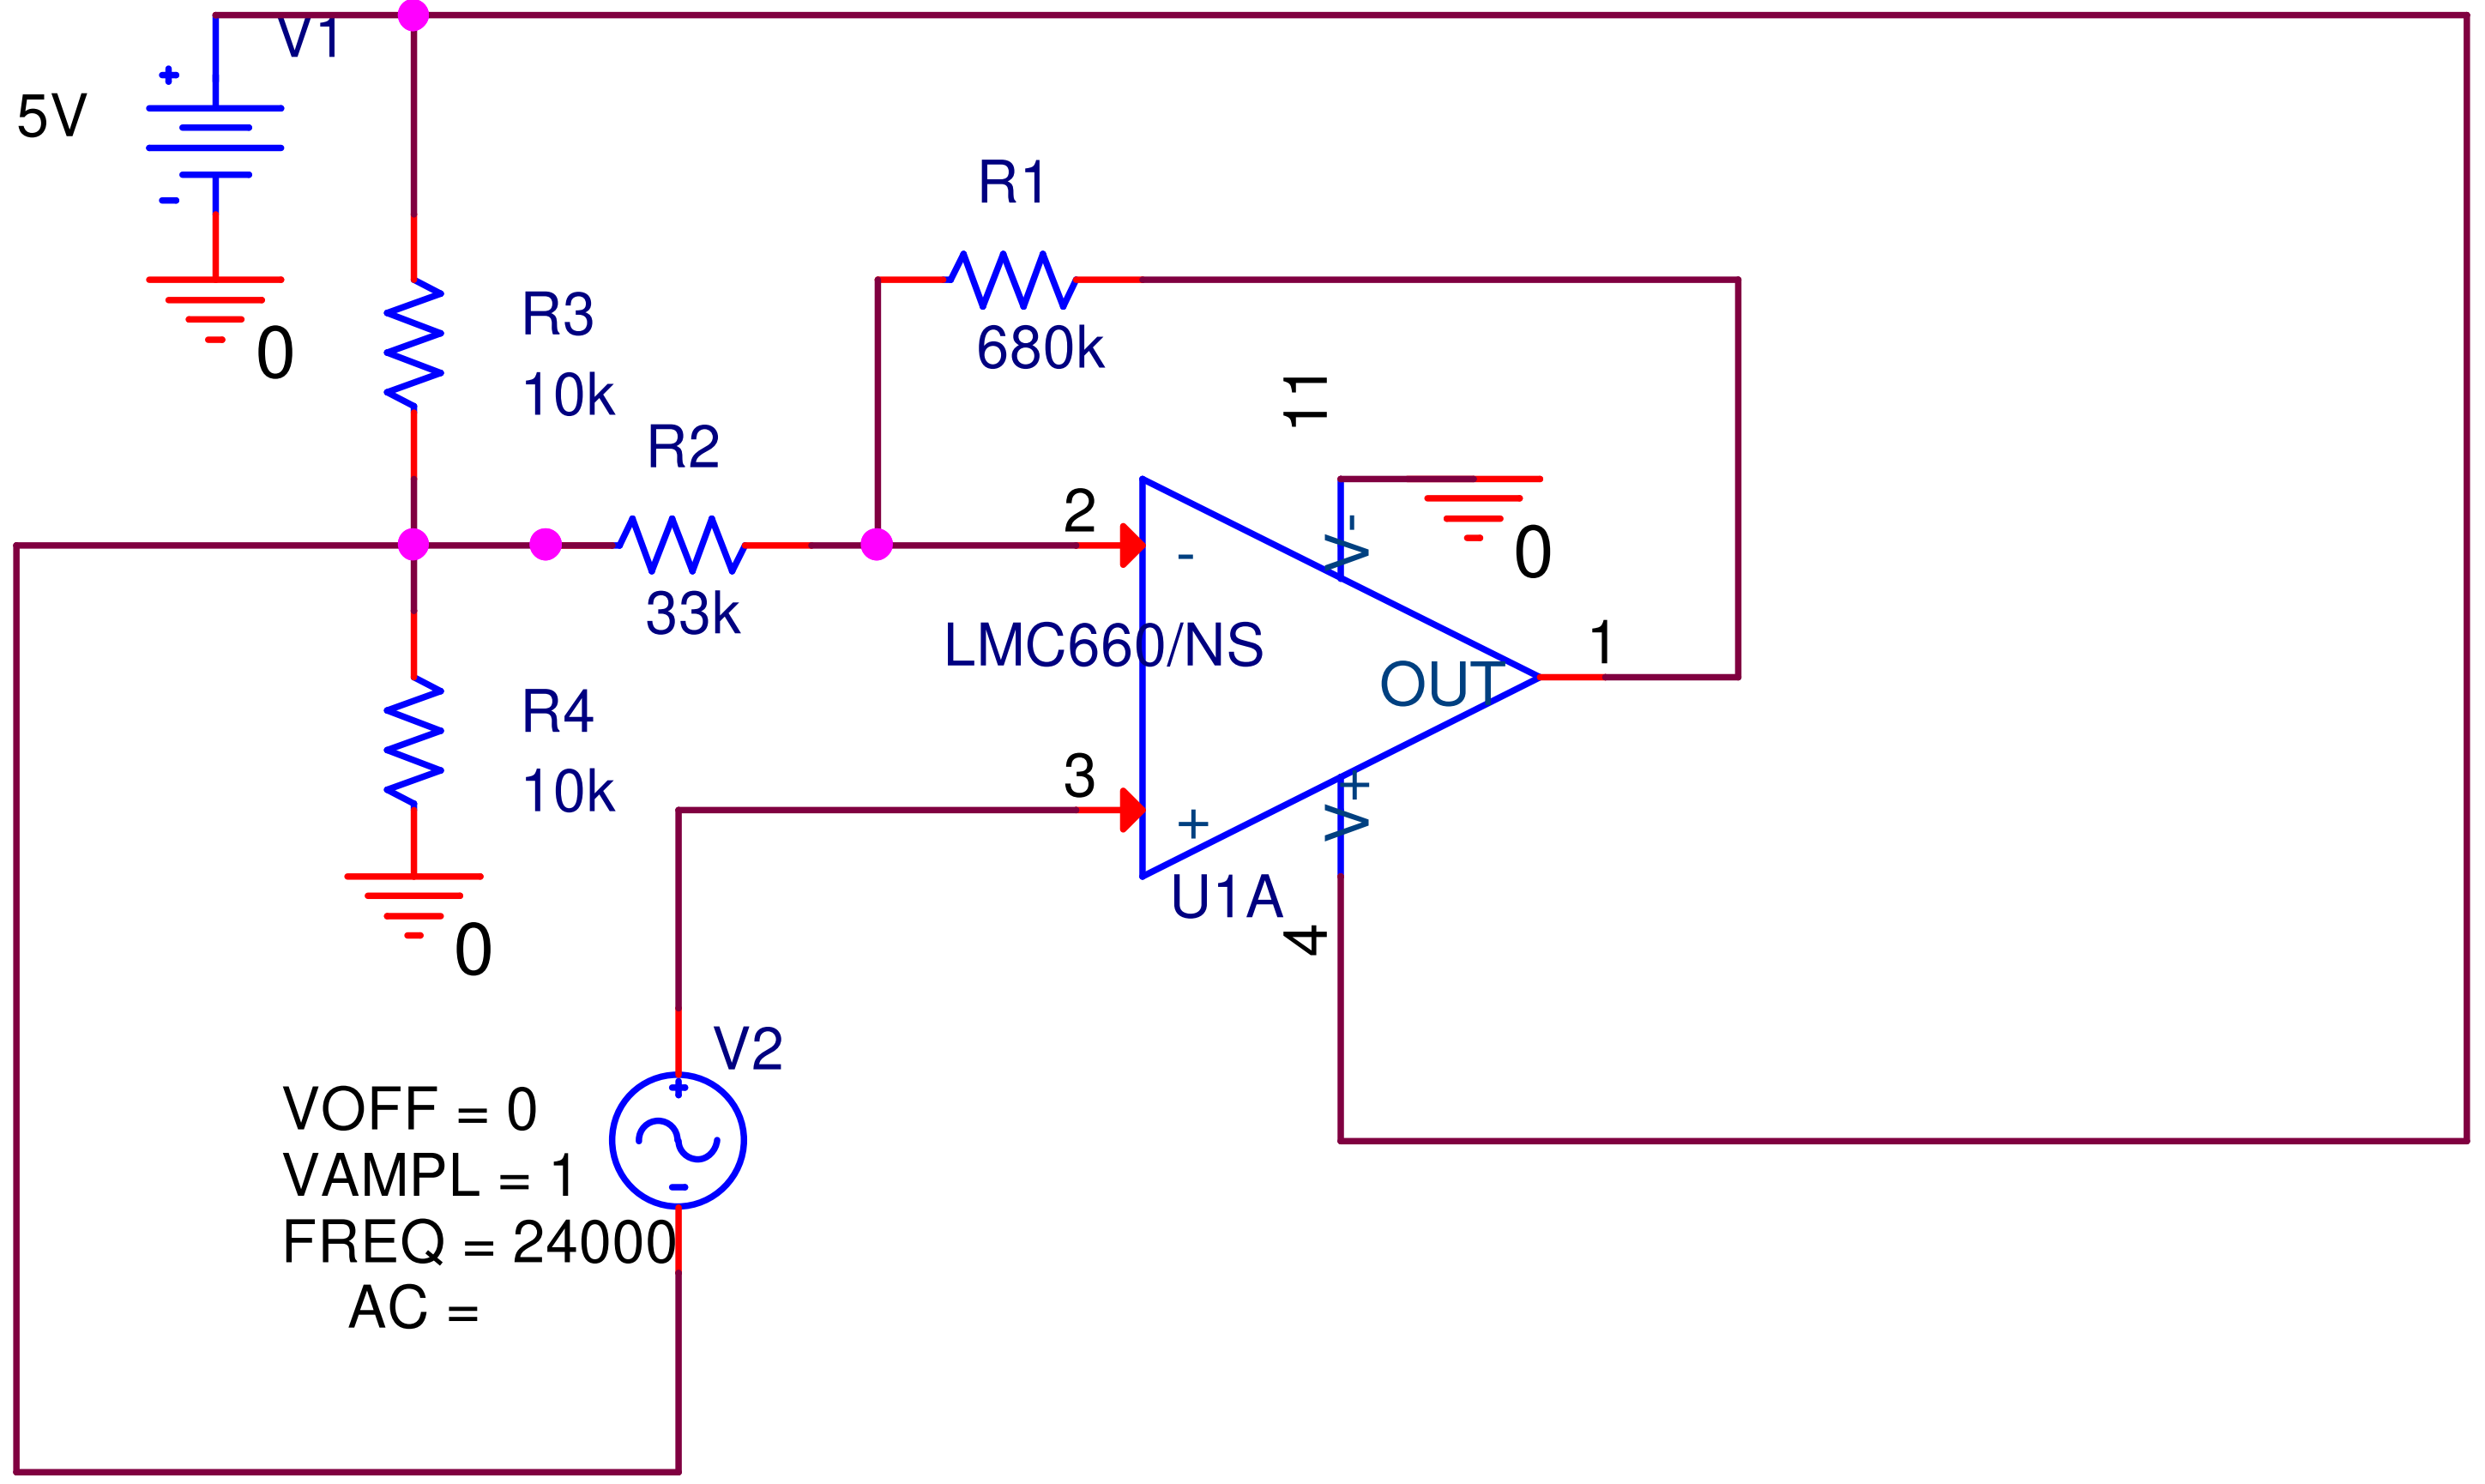 Serial Communication Via Audio On Android Inverting Comparator With Hysteresis The Circuit Is A Non Positive Feedback Resulting In For Stability Near